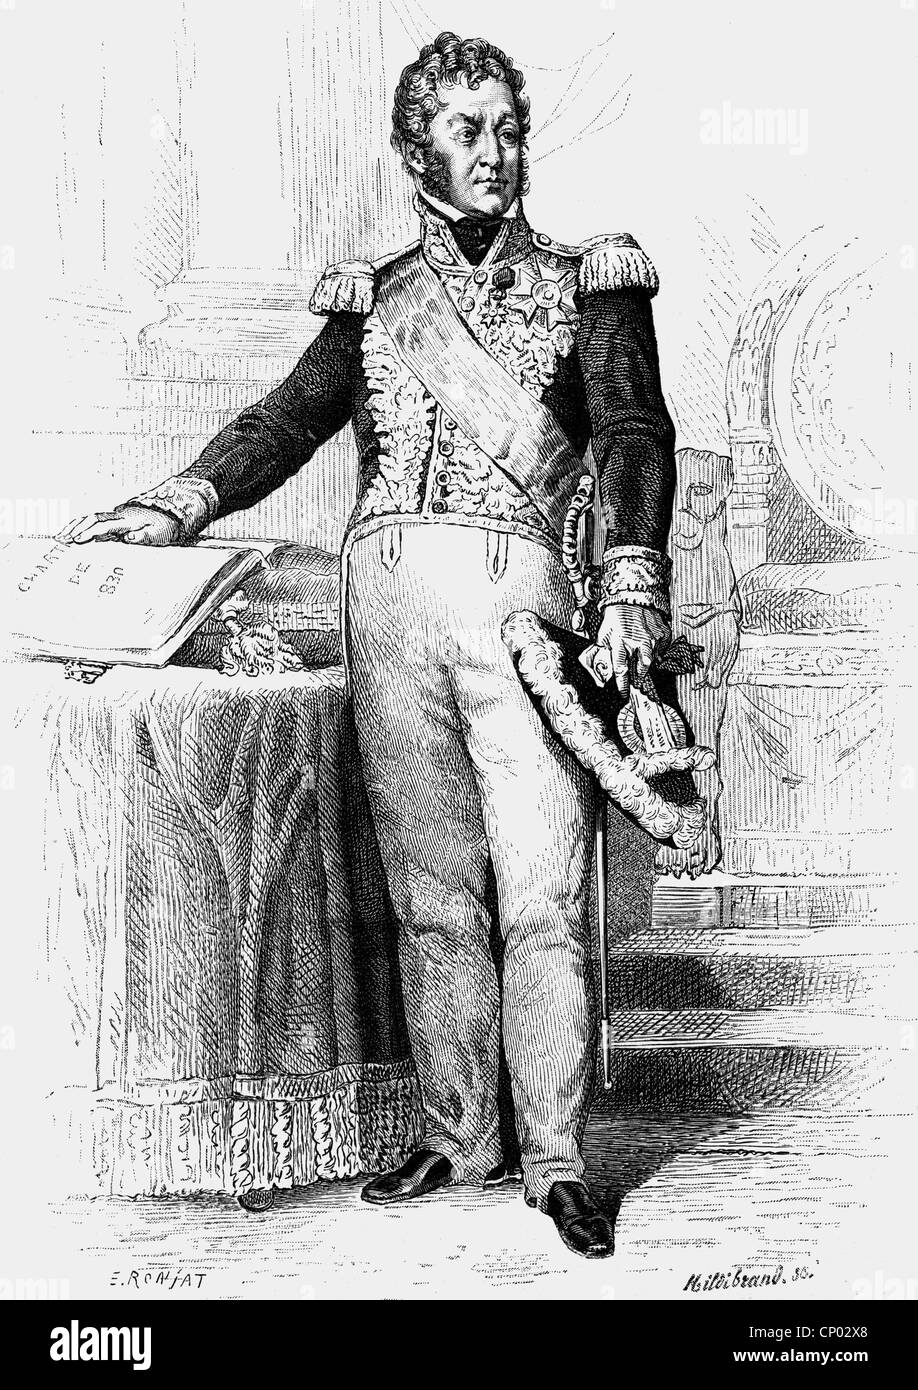 Louis Philippe, 6.10.1773 - 26. 8.1850, King of France 7.8.1830 - 24.2.1848, full length, wood engraving, 19th century, - Stock Image